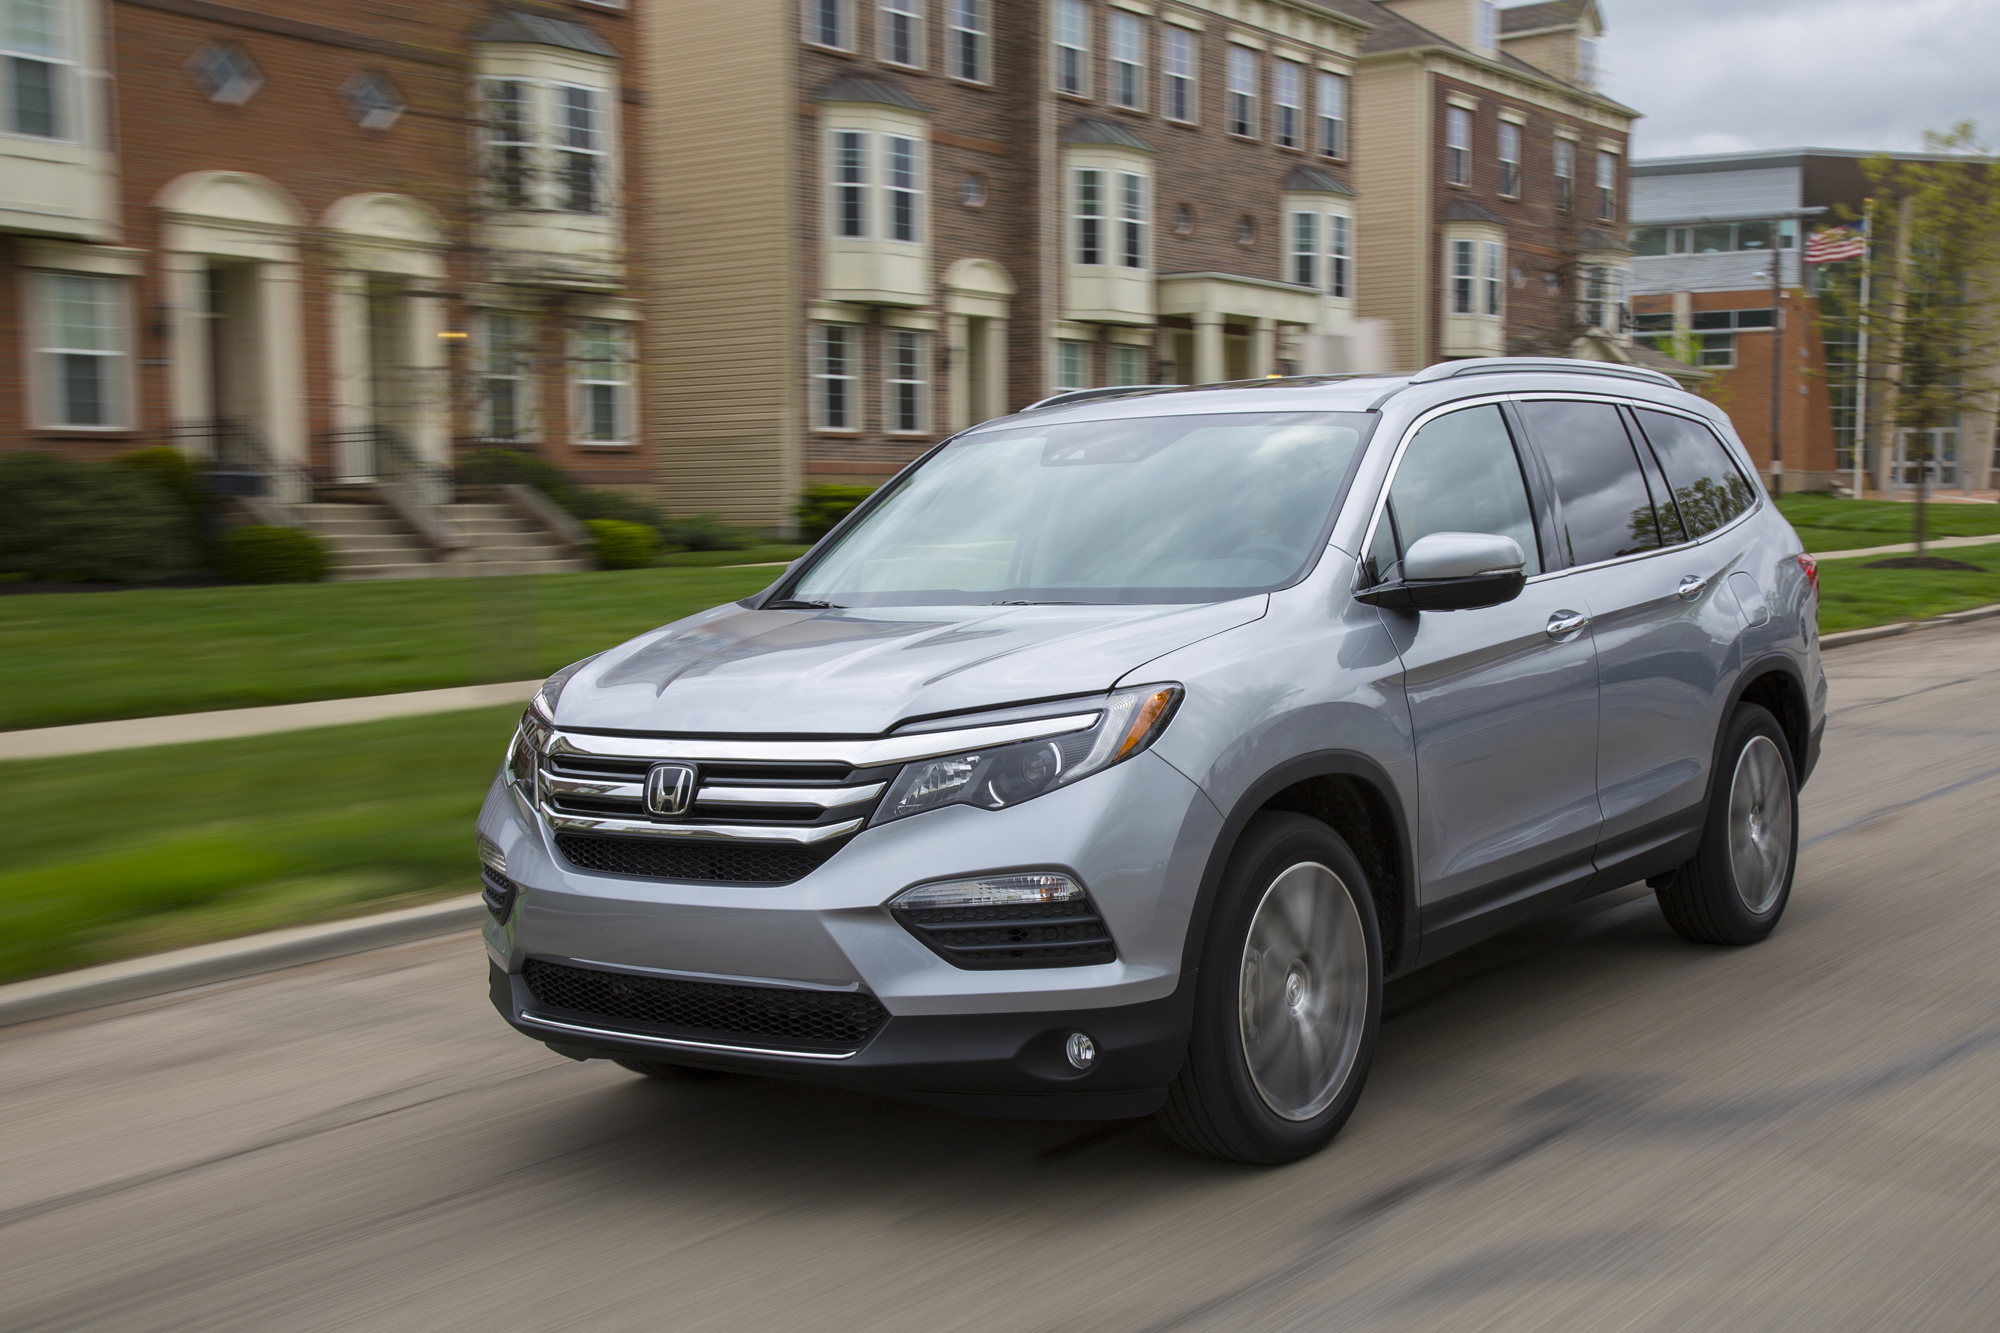 2014 honda pilot spy pictures automotive hot news and informations